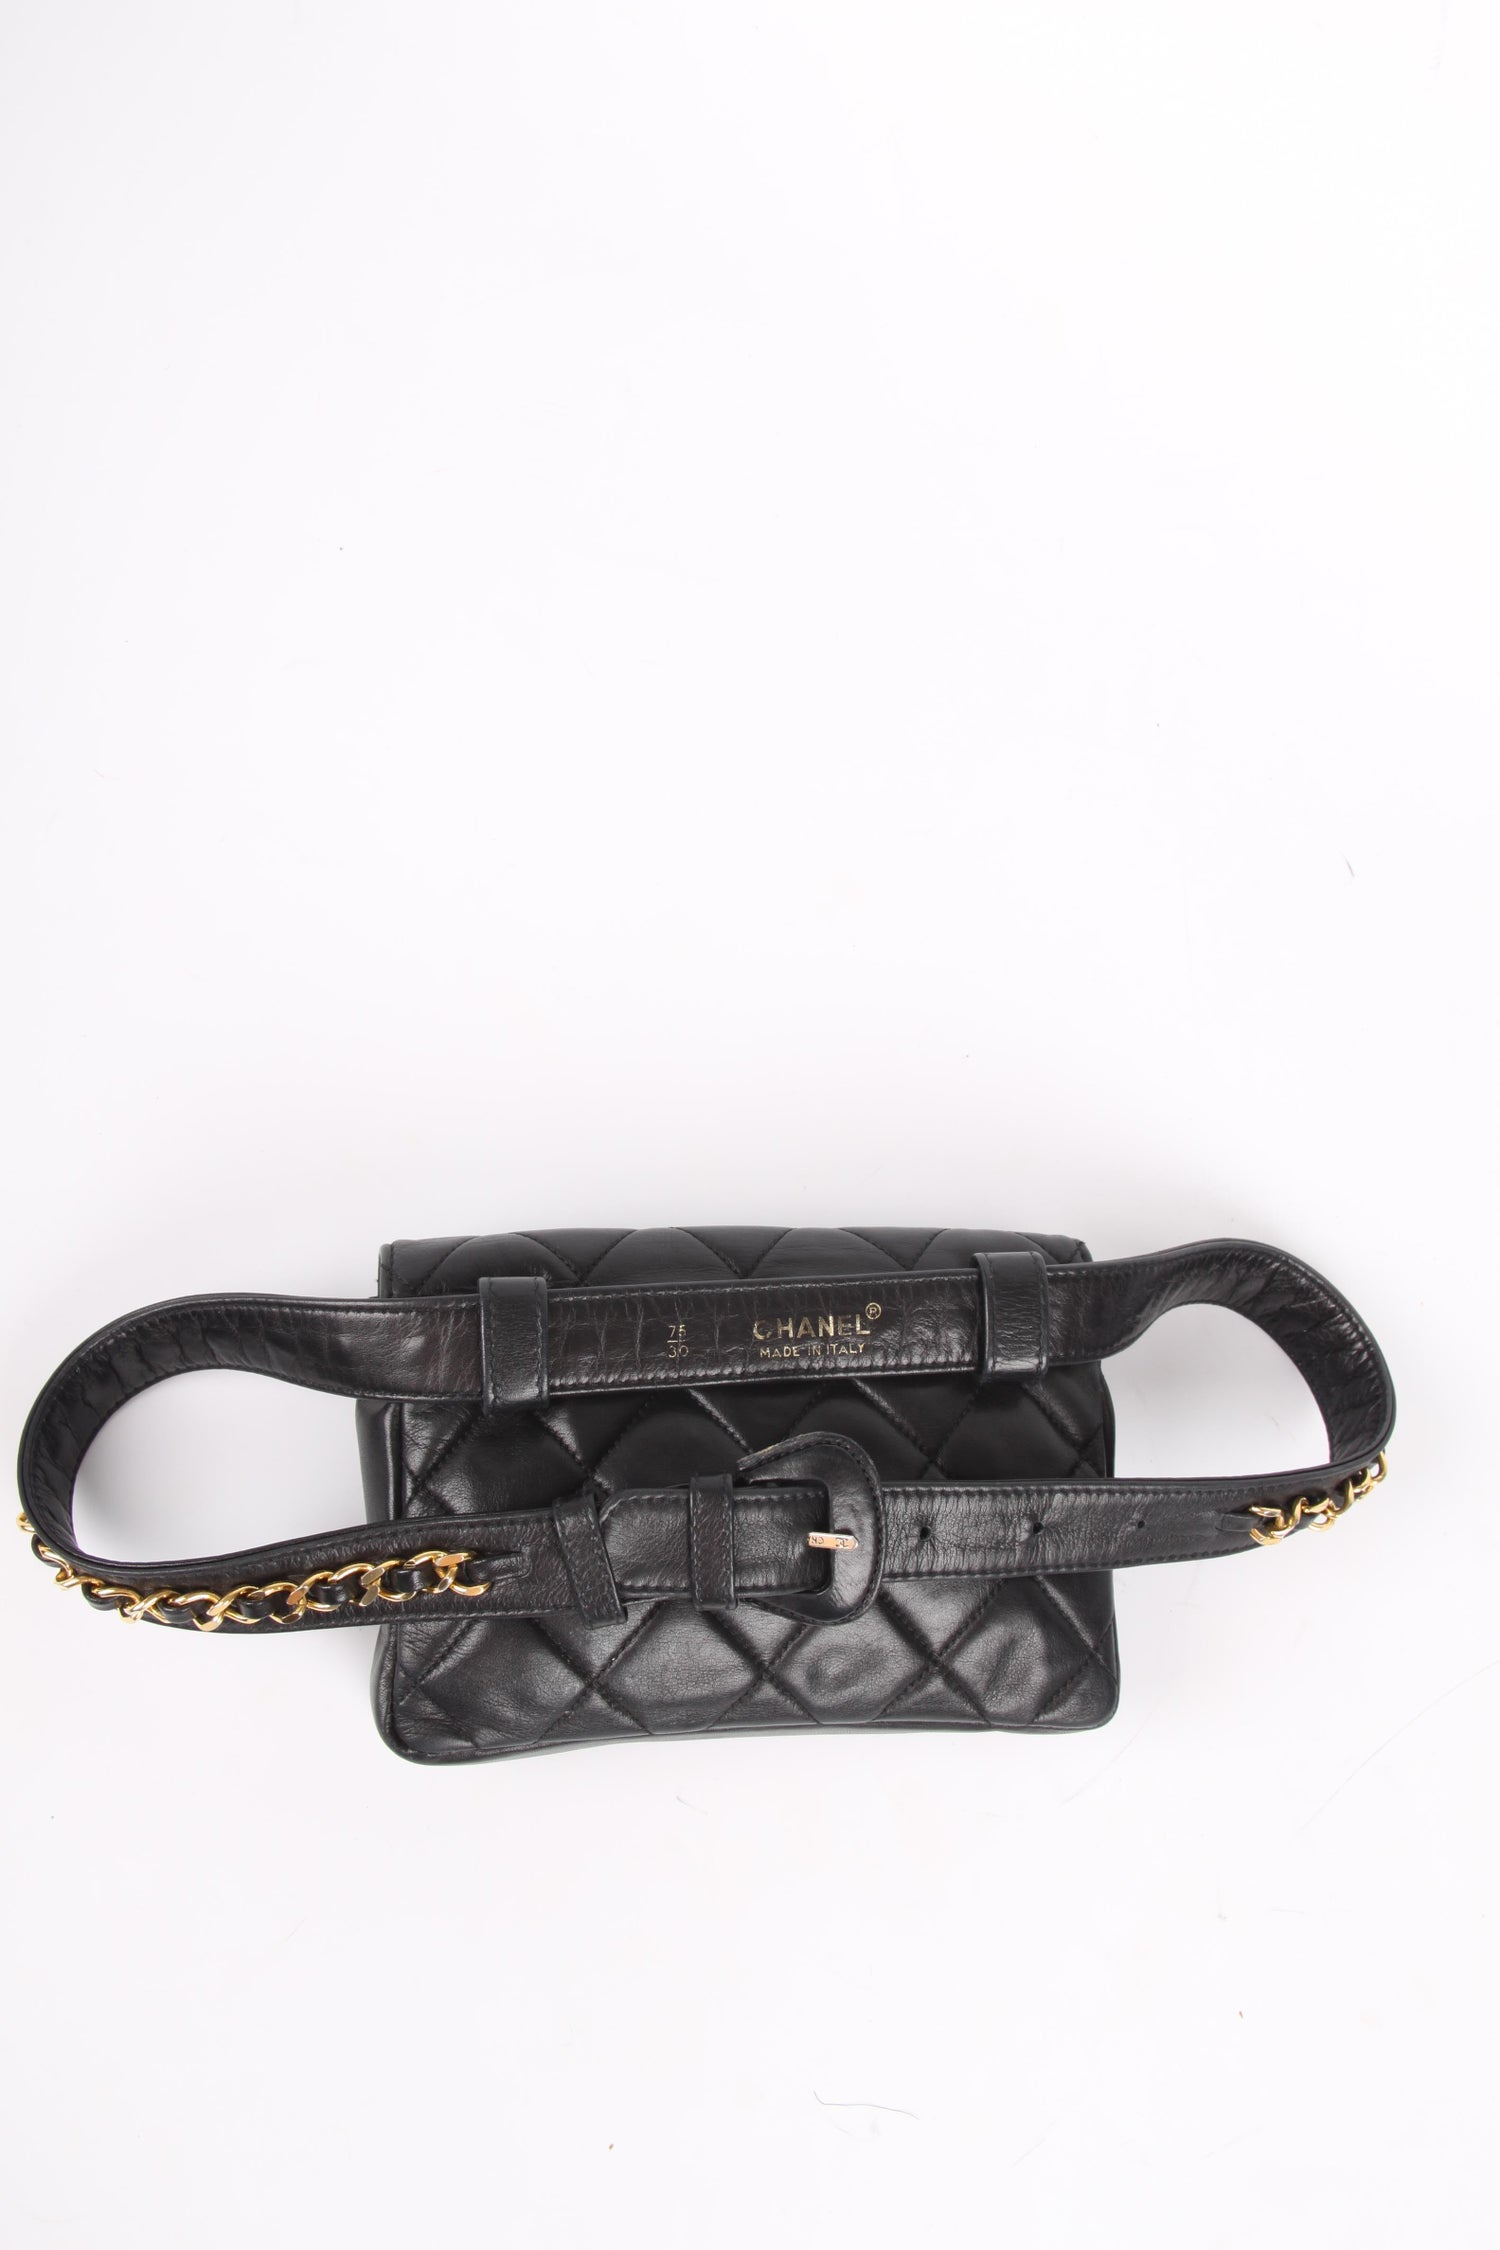 d6c90a3151f9 Chanel Belt Bag Leather - black/gold For Sale at 1stdibs